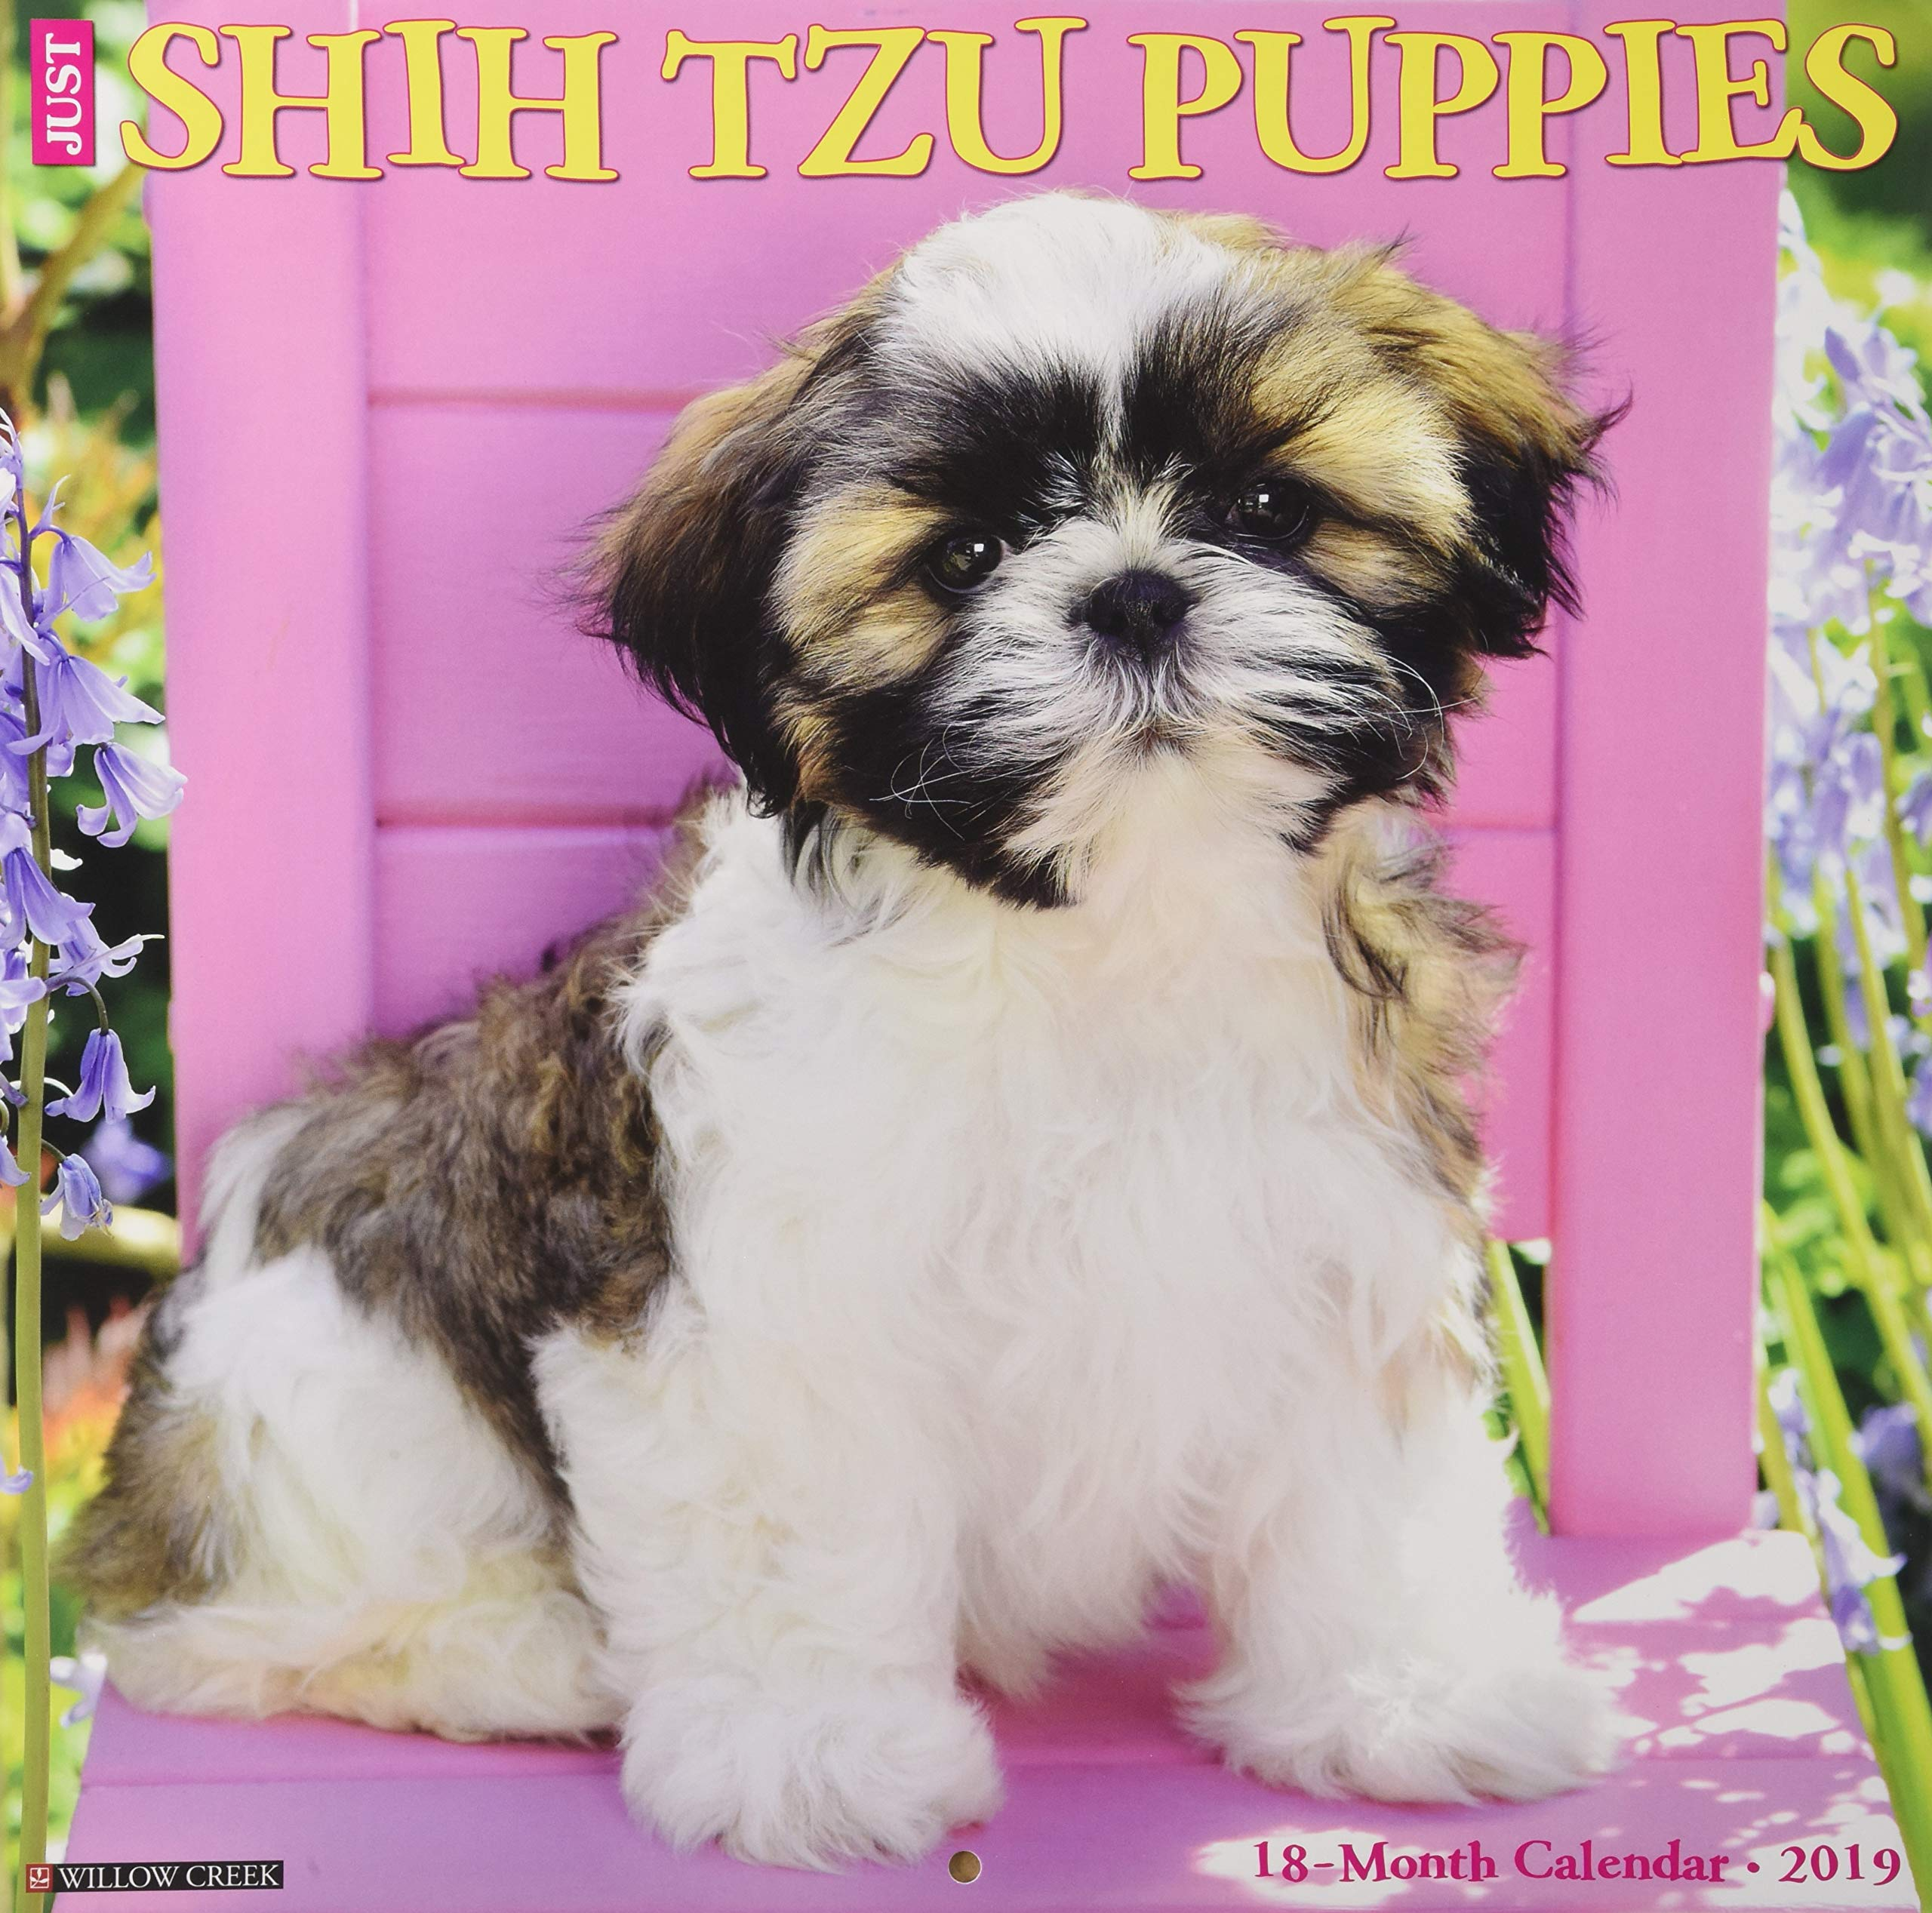 Just Shih Tzu Puppies 2019 Wall Calendar (Dog Breed Calendar ...